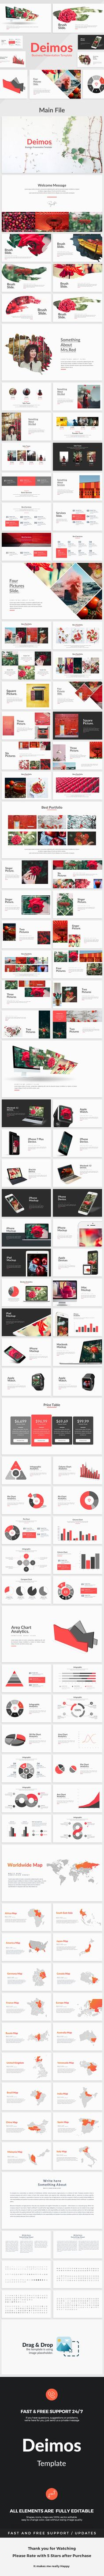 Deimos  Business Presentation Template — Powerpoint PPT #branding #bara • Download ➝ https://graphicriver.net/item/deimos-business-presentation-template/19235822?ref=pxcr